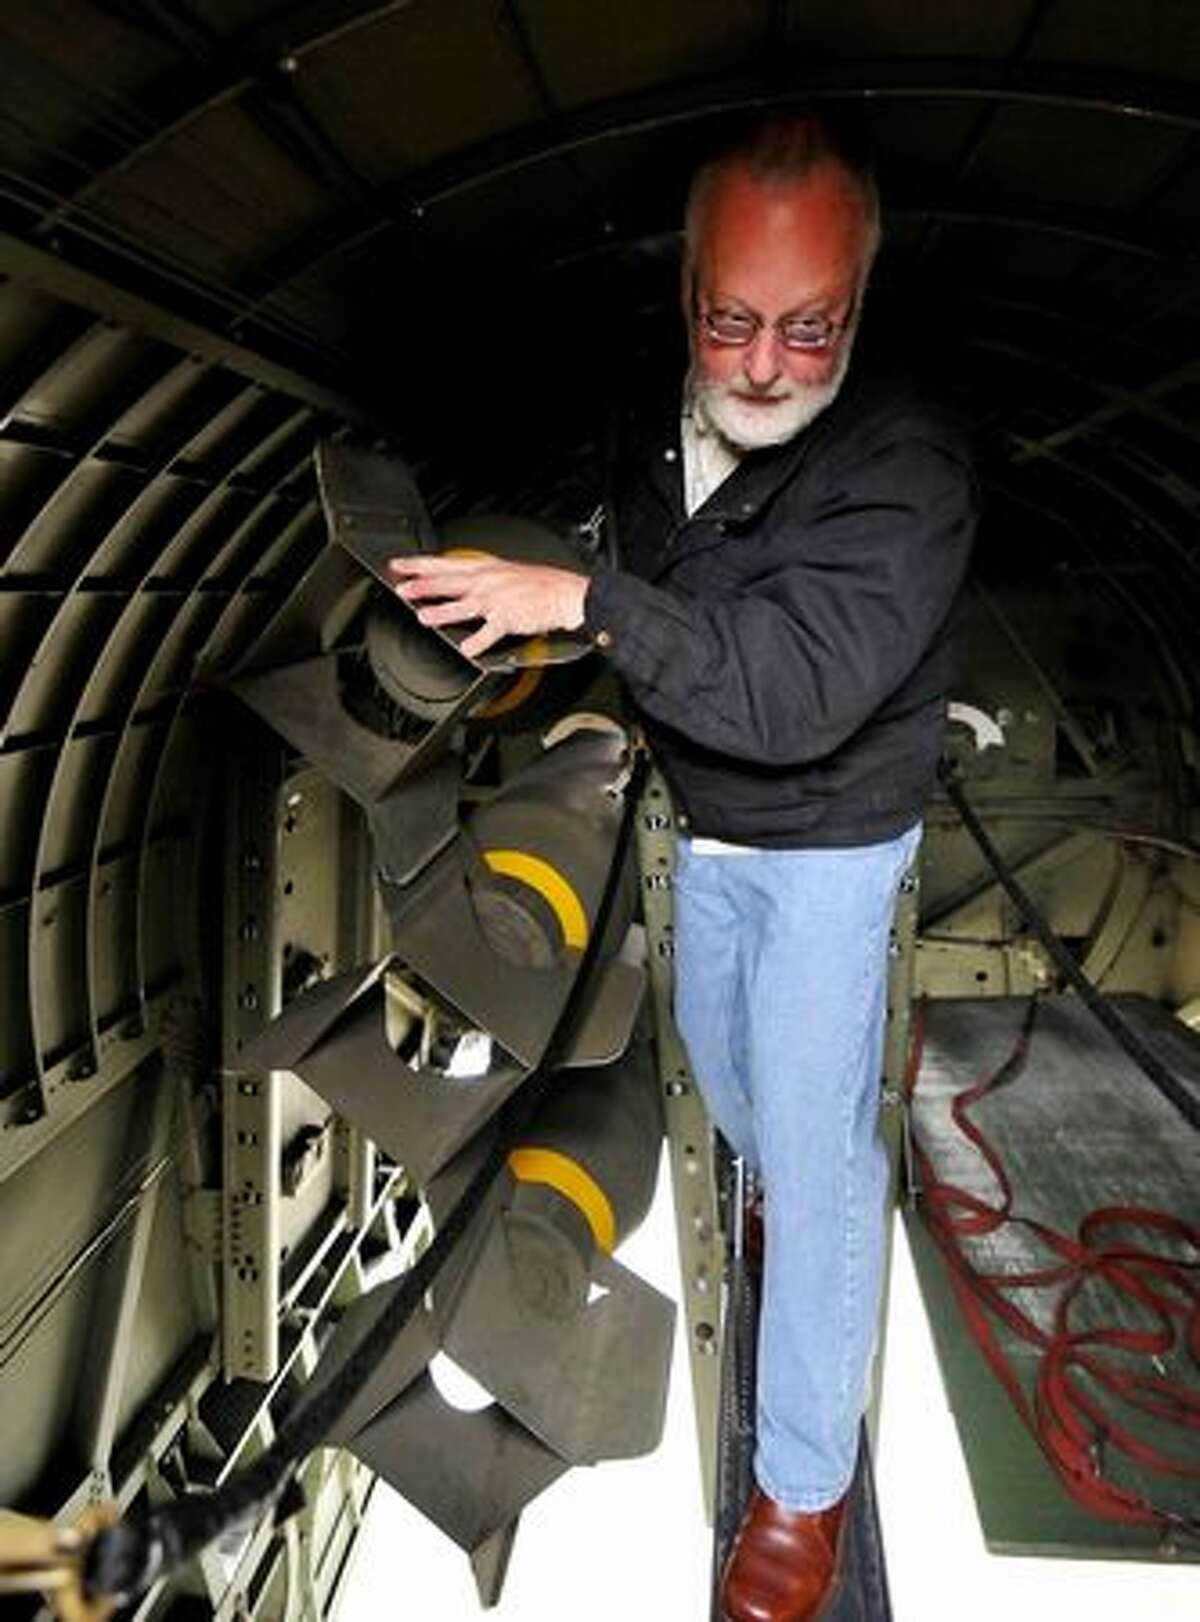 Ron Reisner squeezes through a tight corridor on the B-17 catwalk where bombs are typically stored.